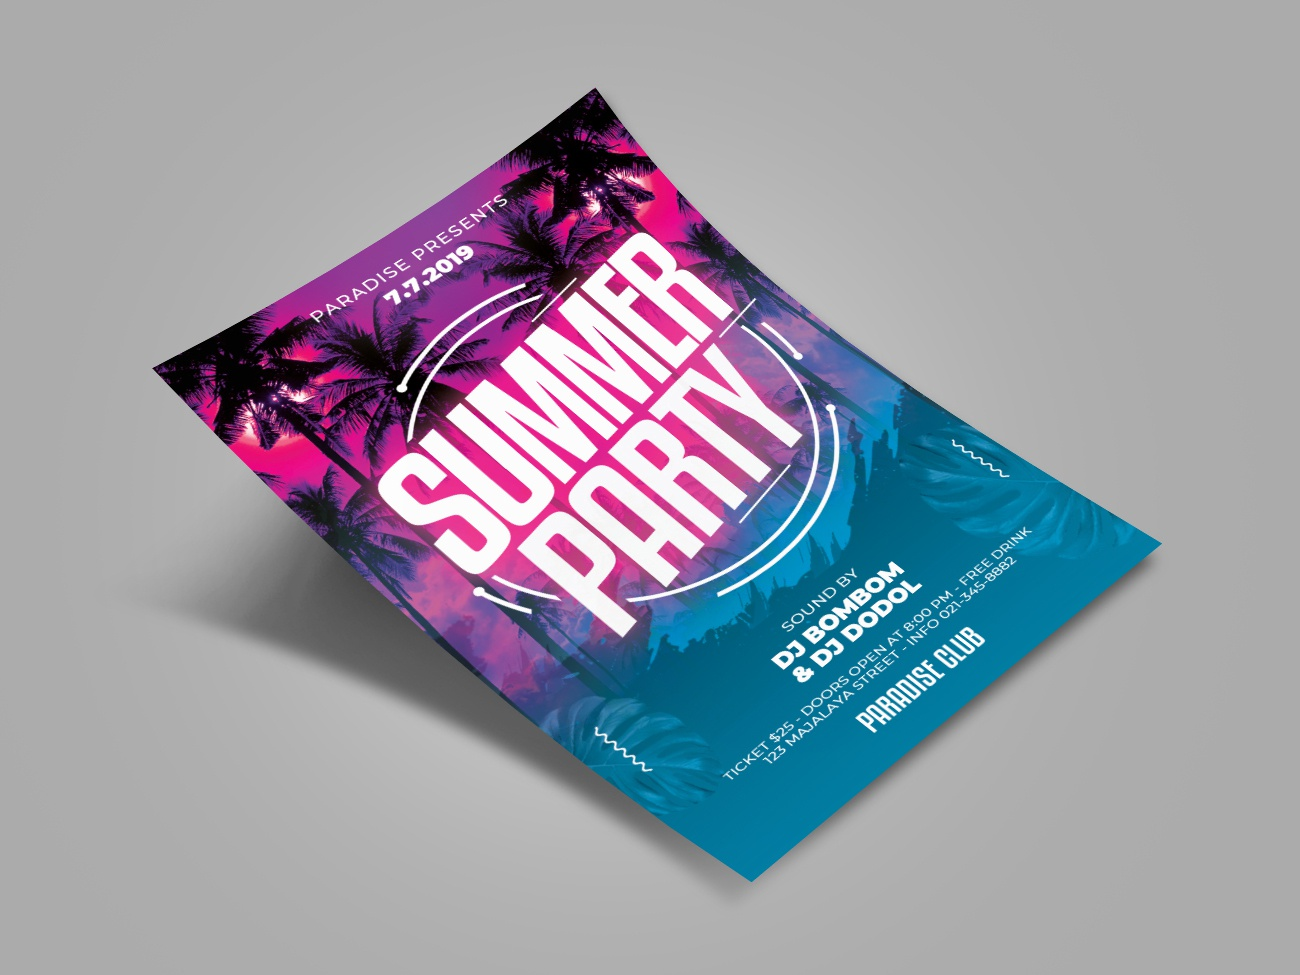 Summer Party Flyer Template summer vibes summer party flyer summer flyer summer party summer invitation illustration print music poster design print design abstract poster event flyer advertising print template template flyer design flyer template